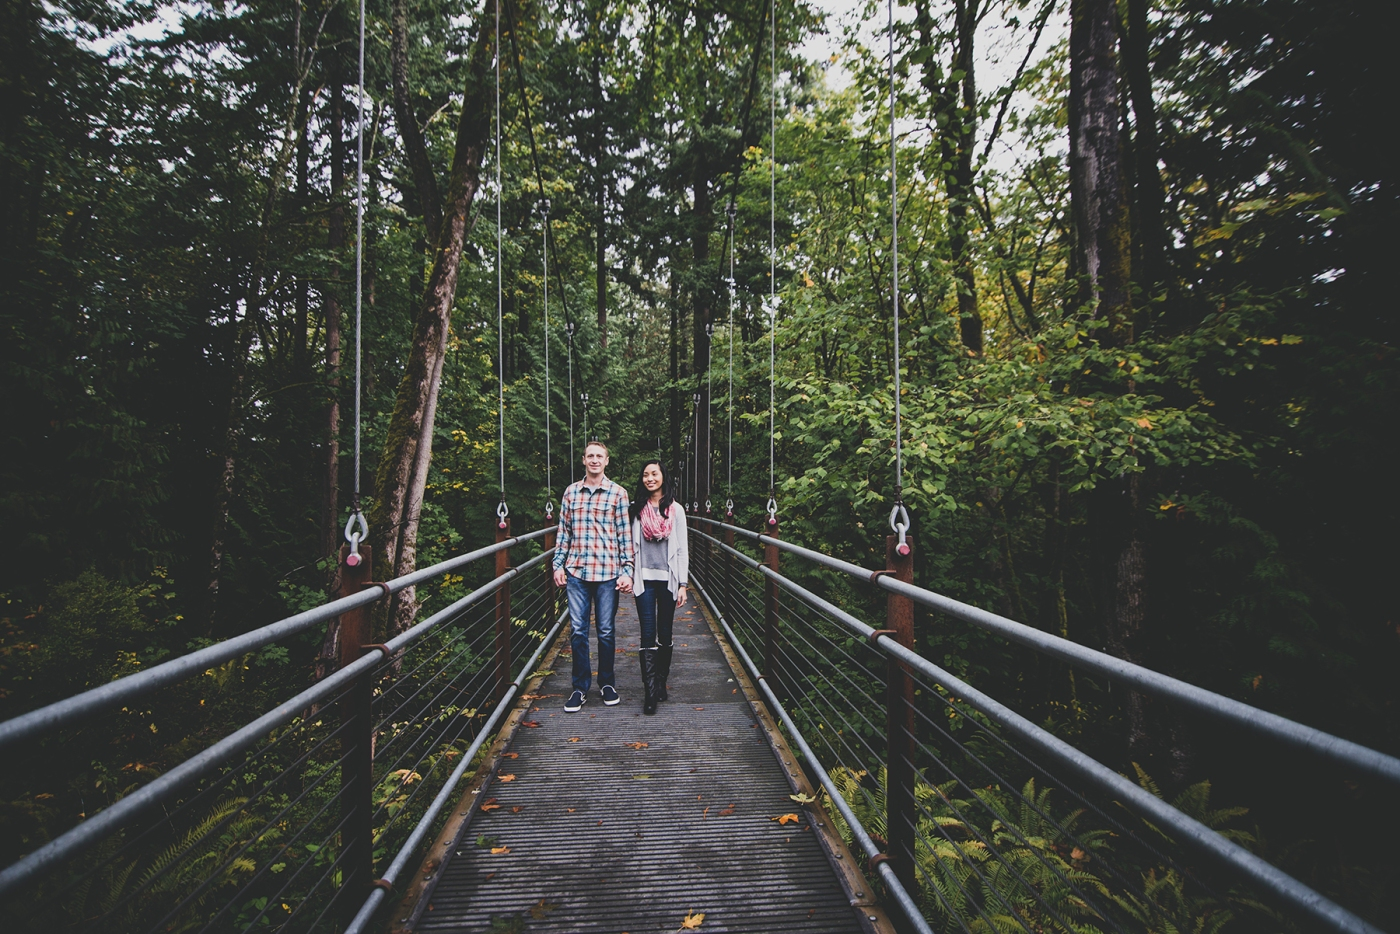 jane-speleers-photography-ju-bri-holiday-october-bellevue-botanical-garden-engagement-2016_dsc_5698